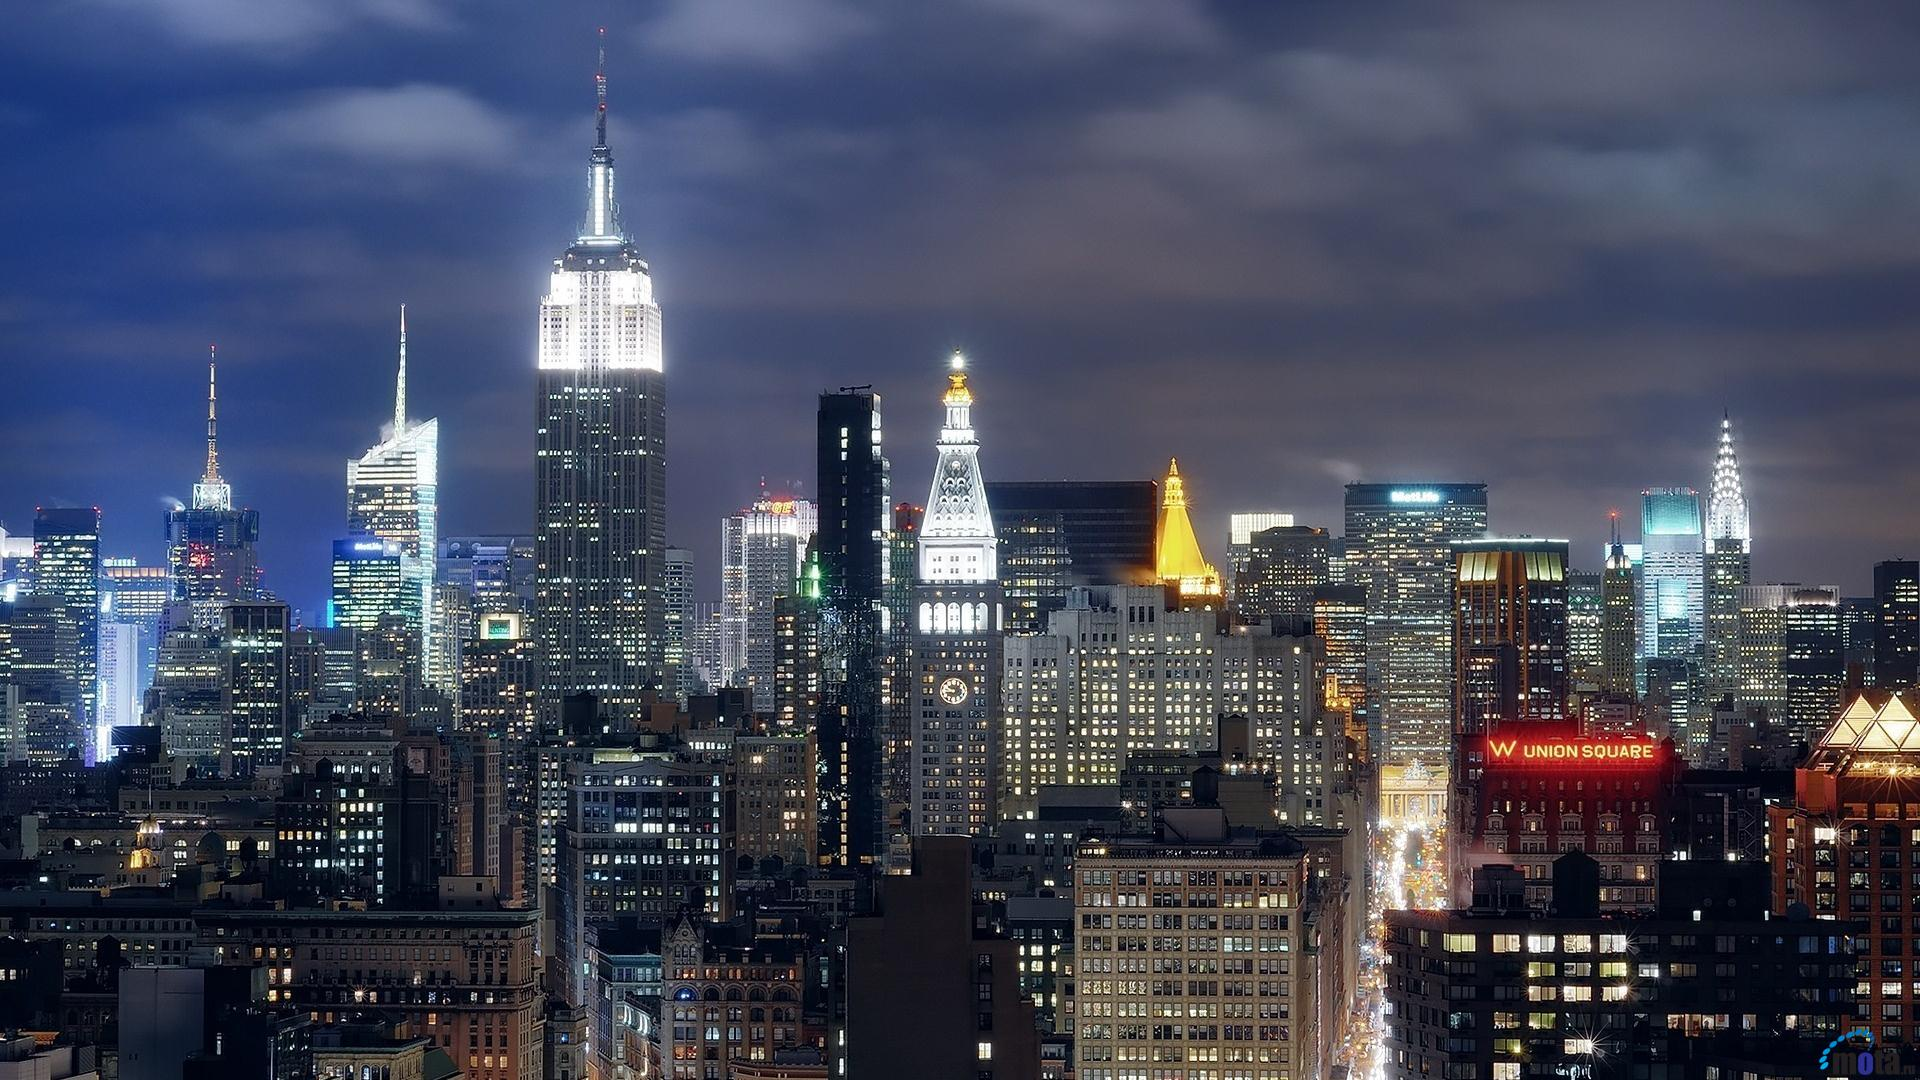 Download Wallpaper Empire State Building 1920 x 1080 HDTV 1920x1080